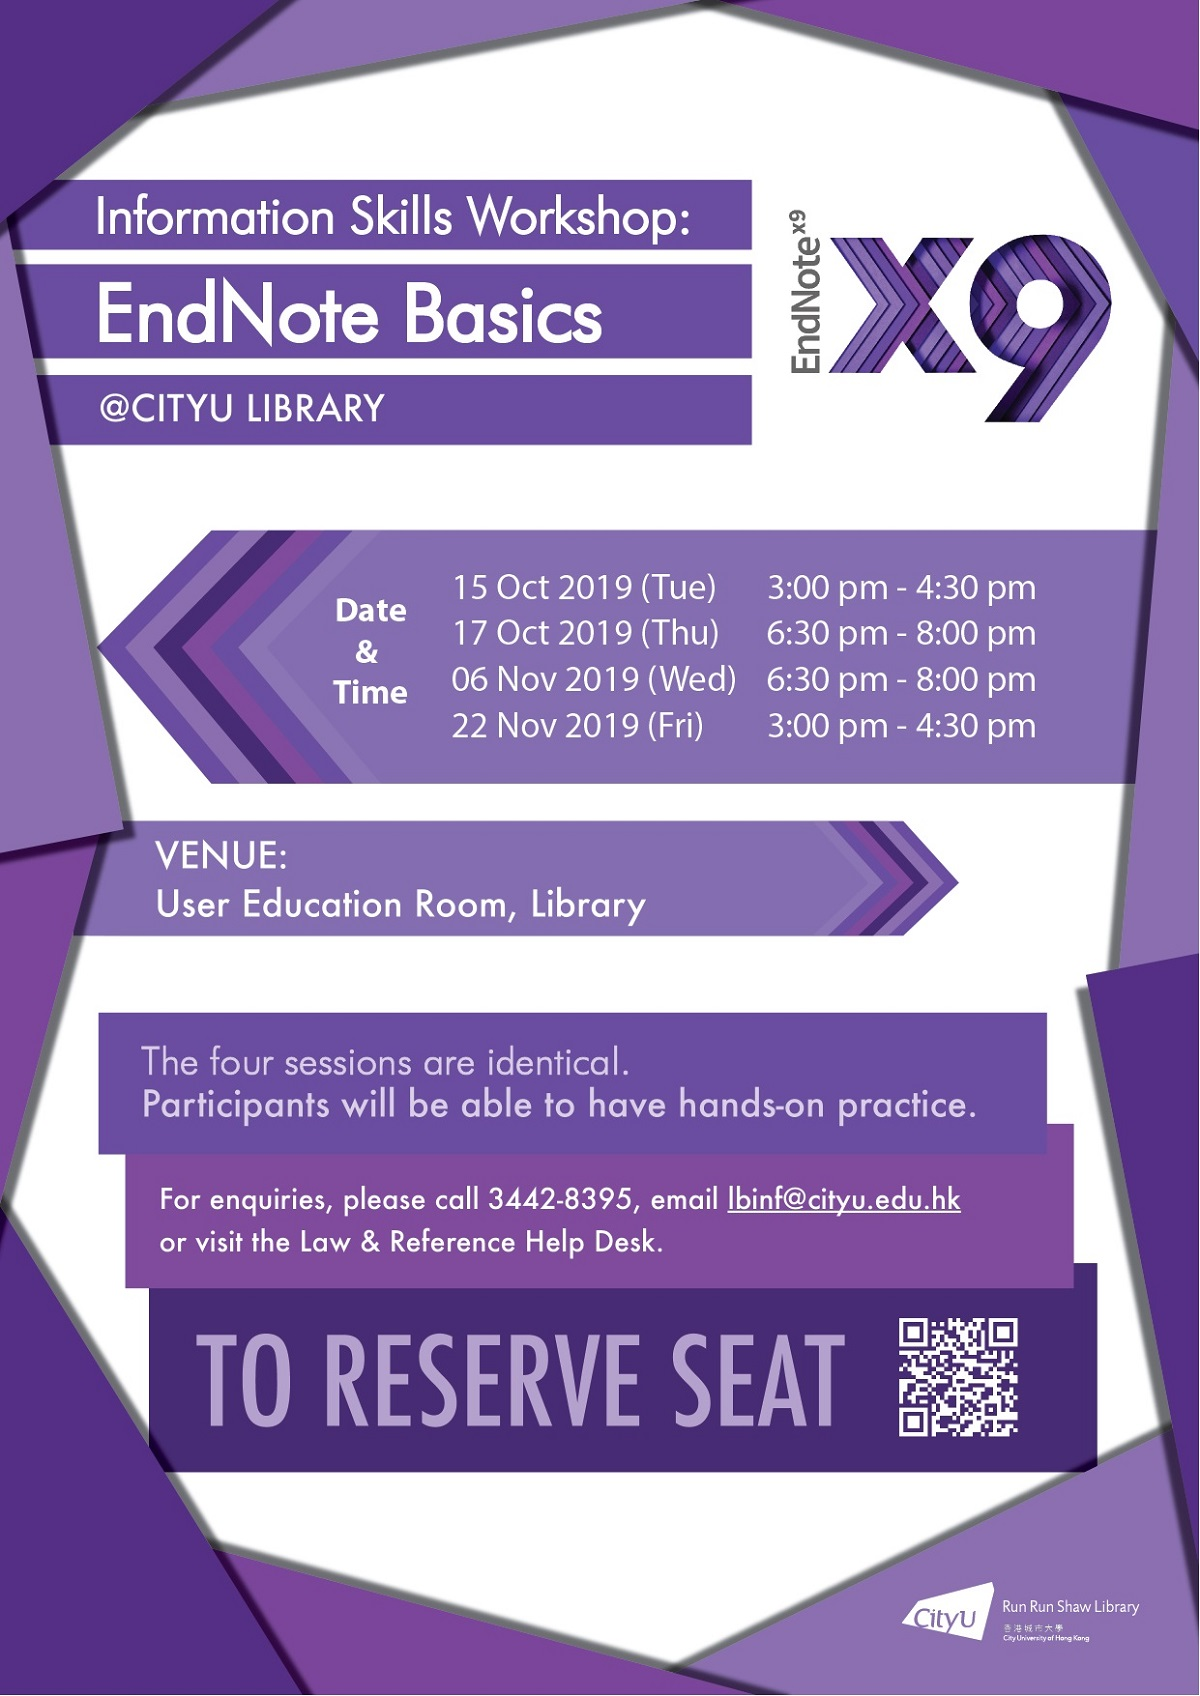 Information Skills Workshop: EndNote Basics @CityU Library;